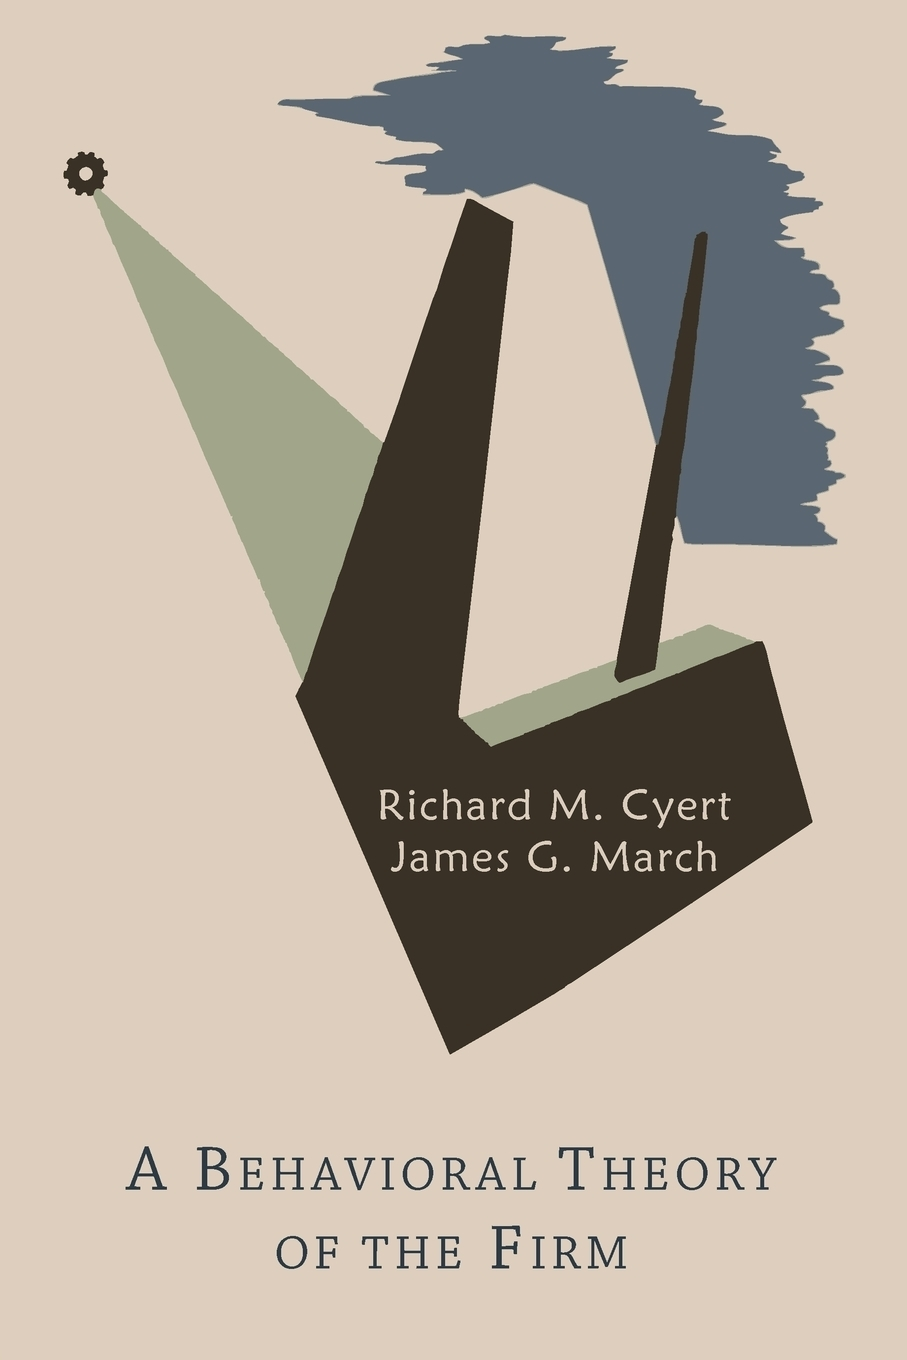 Richard Michael Cyert, James G. March. A Behavioral Theory of the Firm